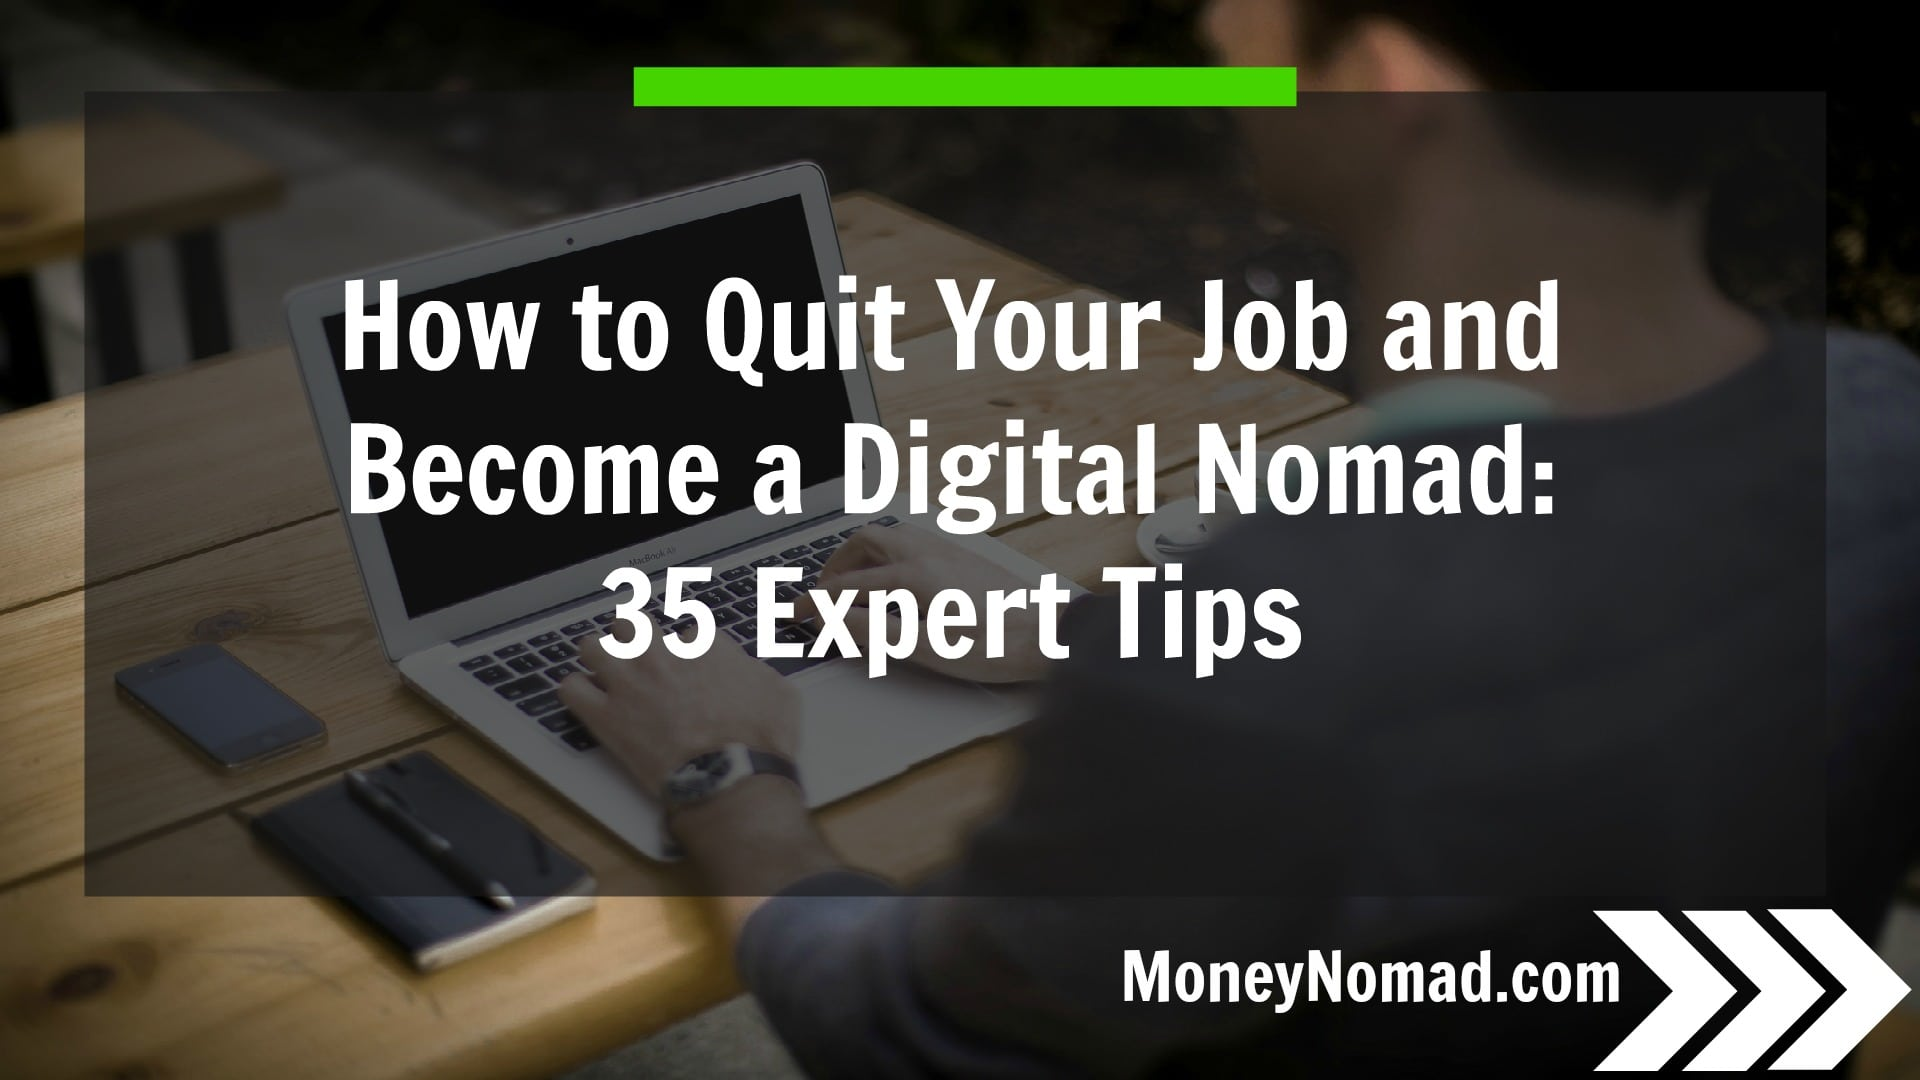 How To Quit Your Job And Become A Digital Nomad Expert Tips - 10 simple ways can make money onlinecoach someone remotely